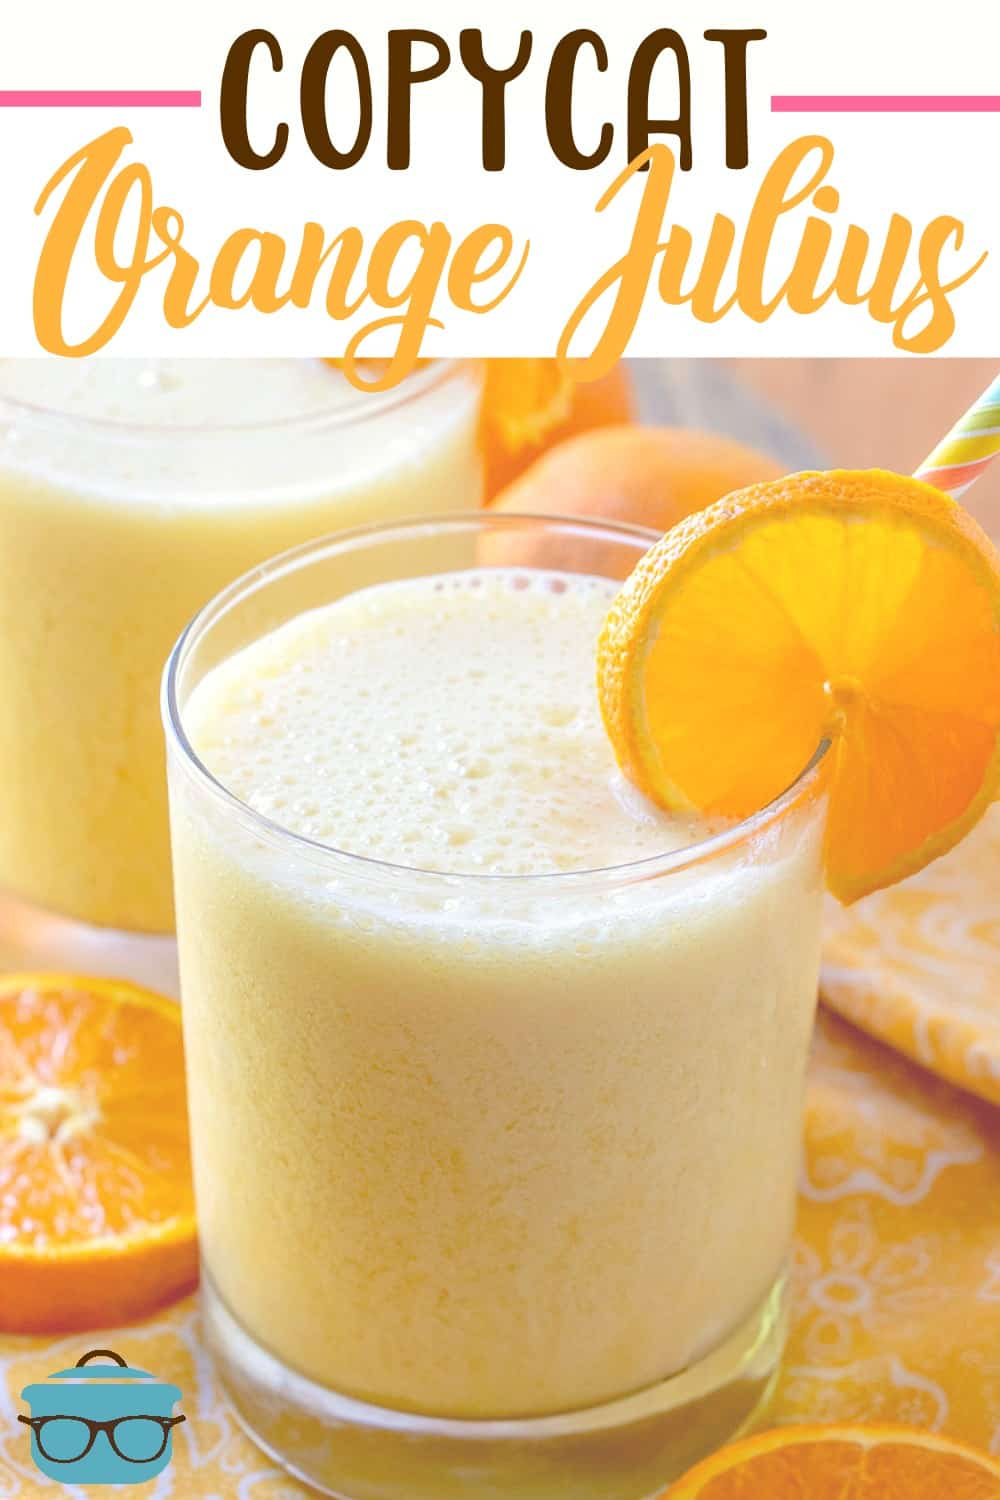 This Copycat Orange Julius recipe is just like the frothy orange drink you remember from the 80's in the mall food court. So good and easy! #orangejulius #drink